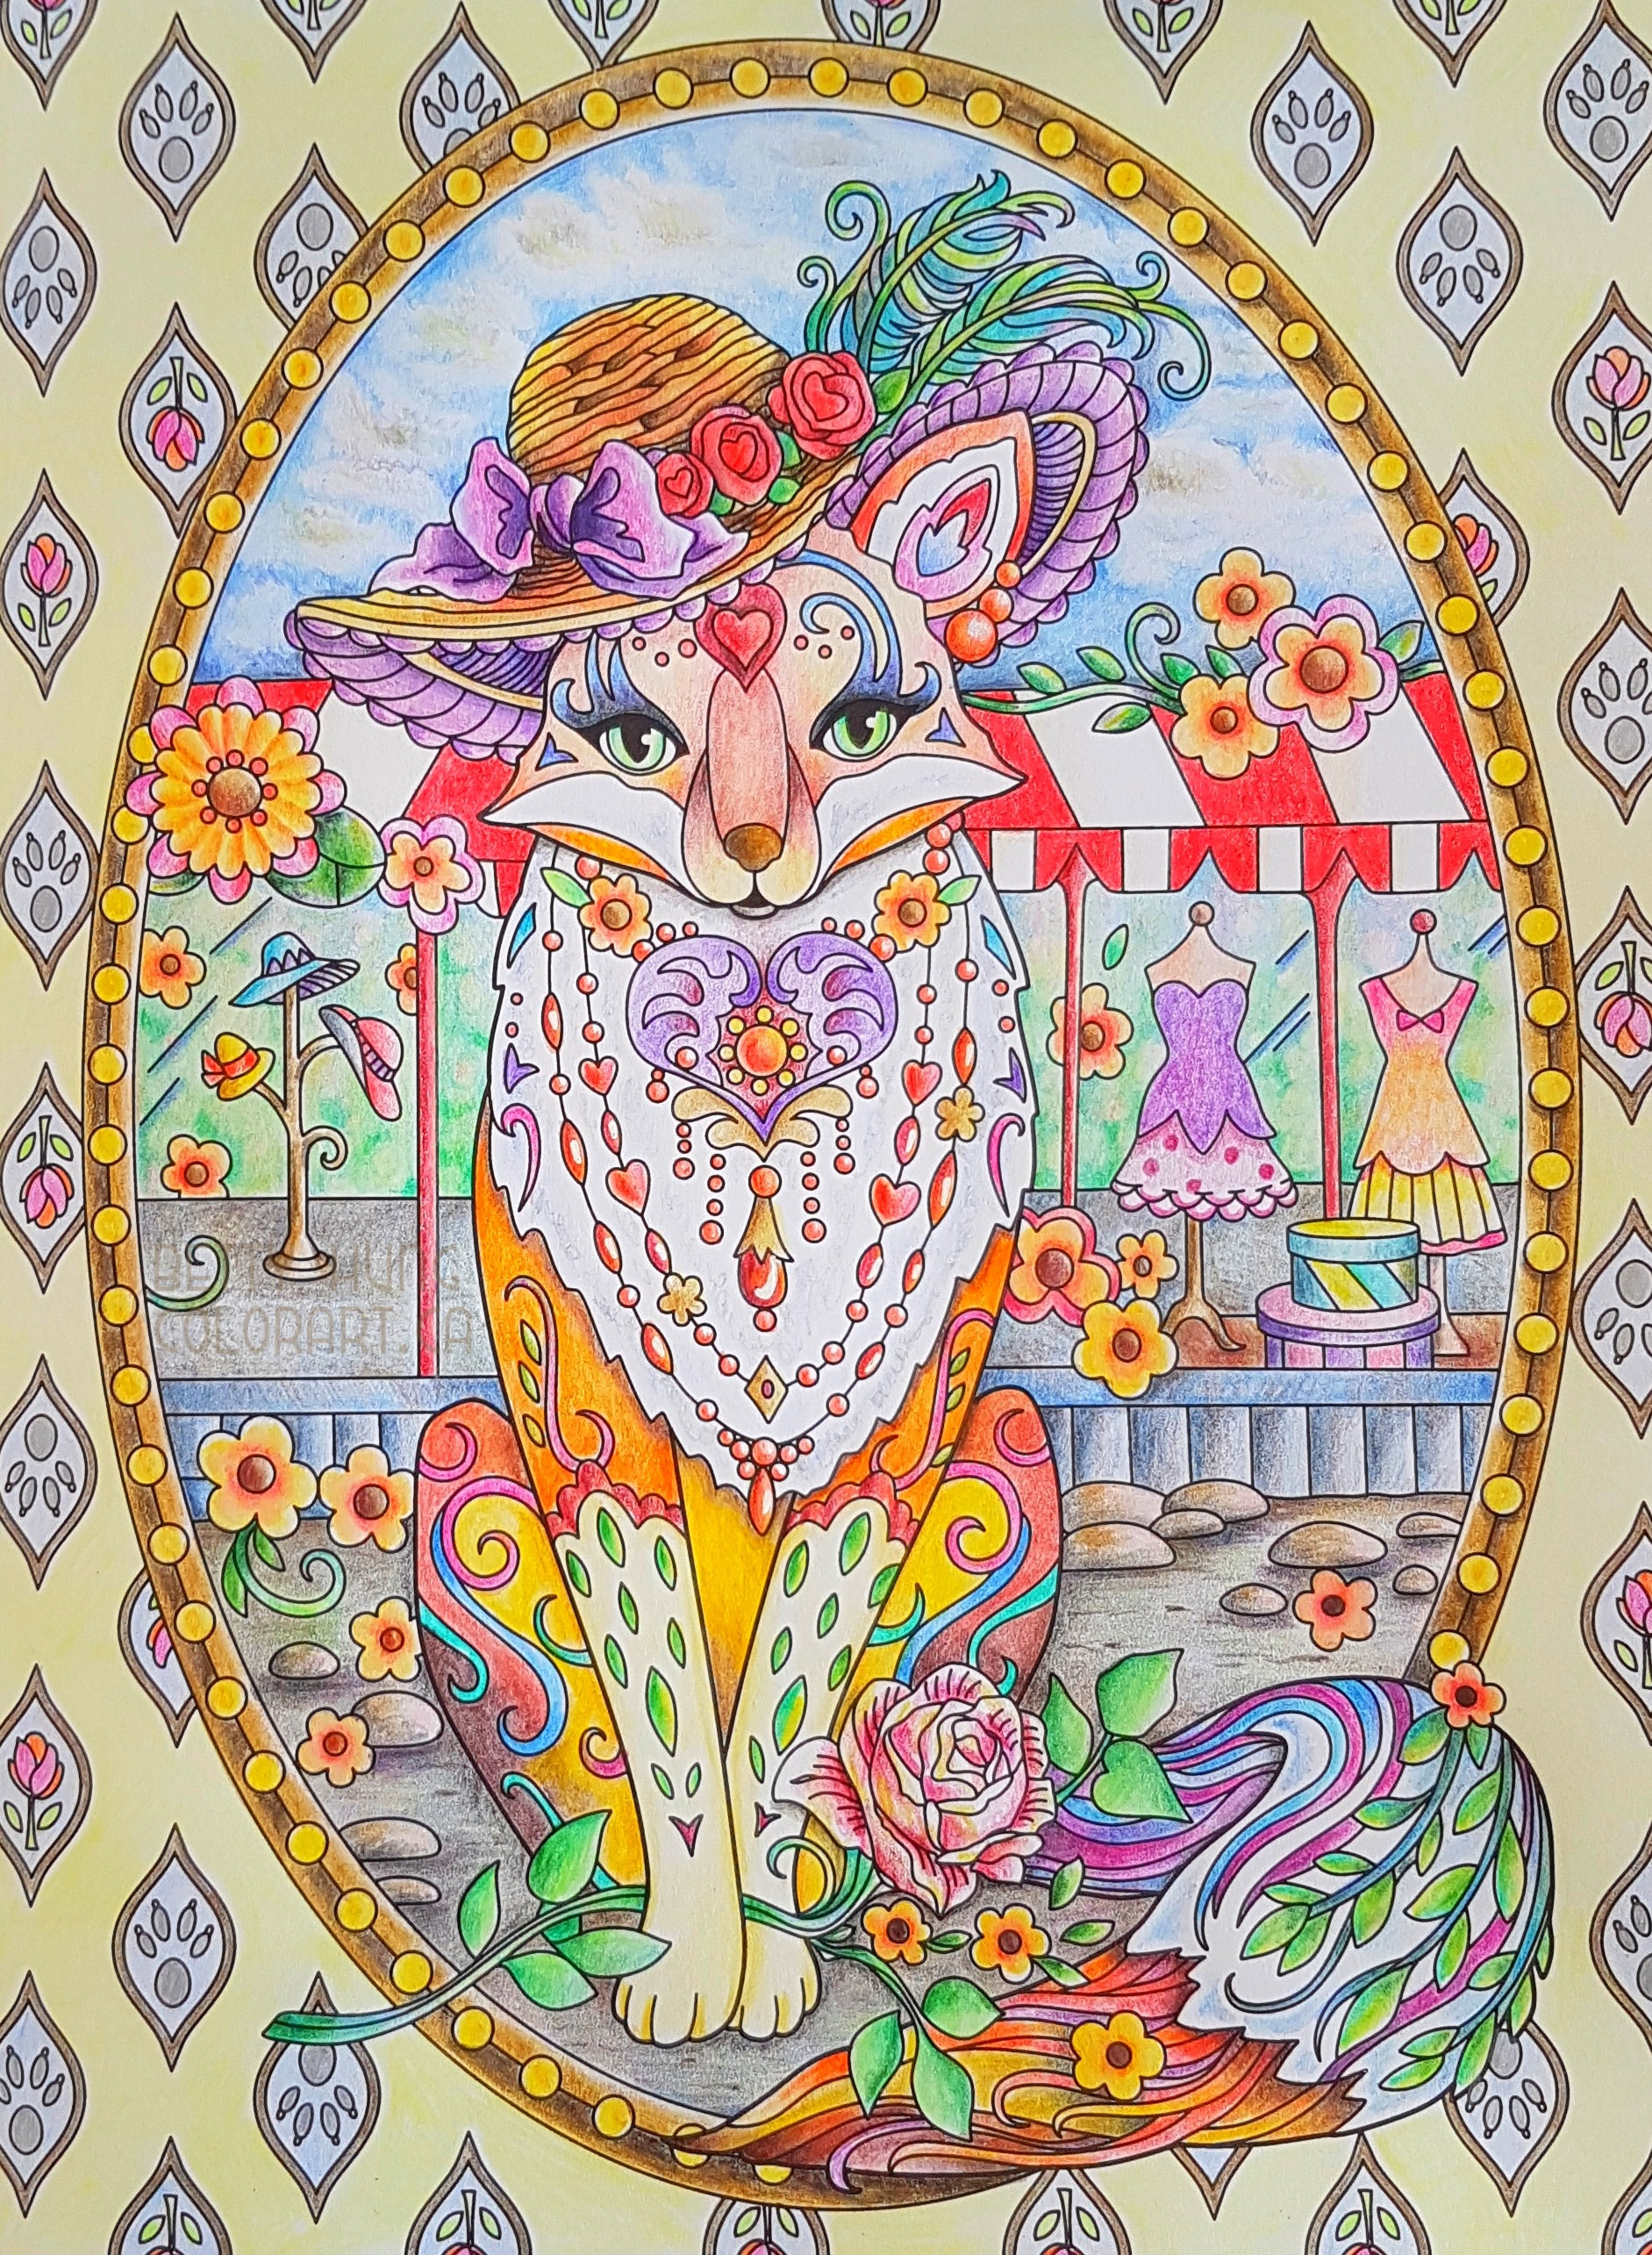 Fanciful foxes by Marjorie Sarnat colored by Betty Hung